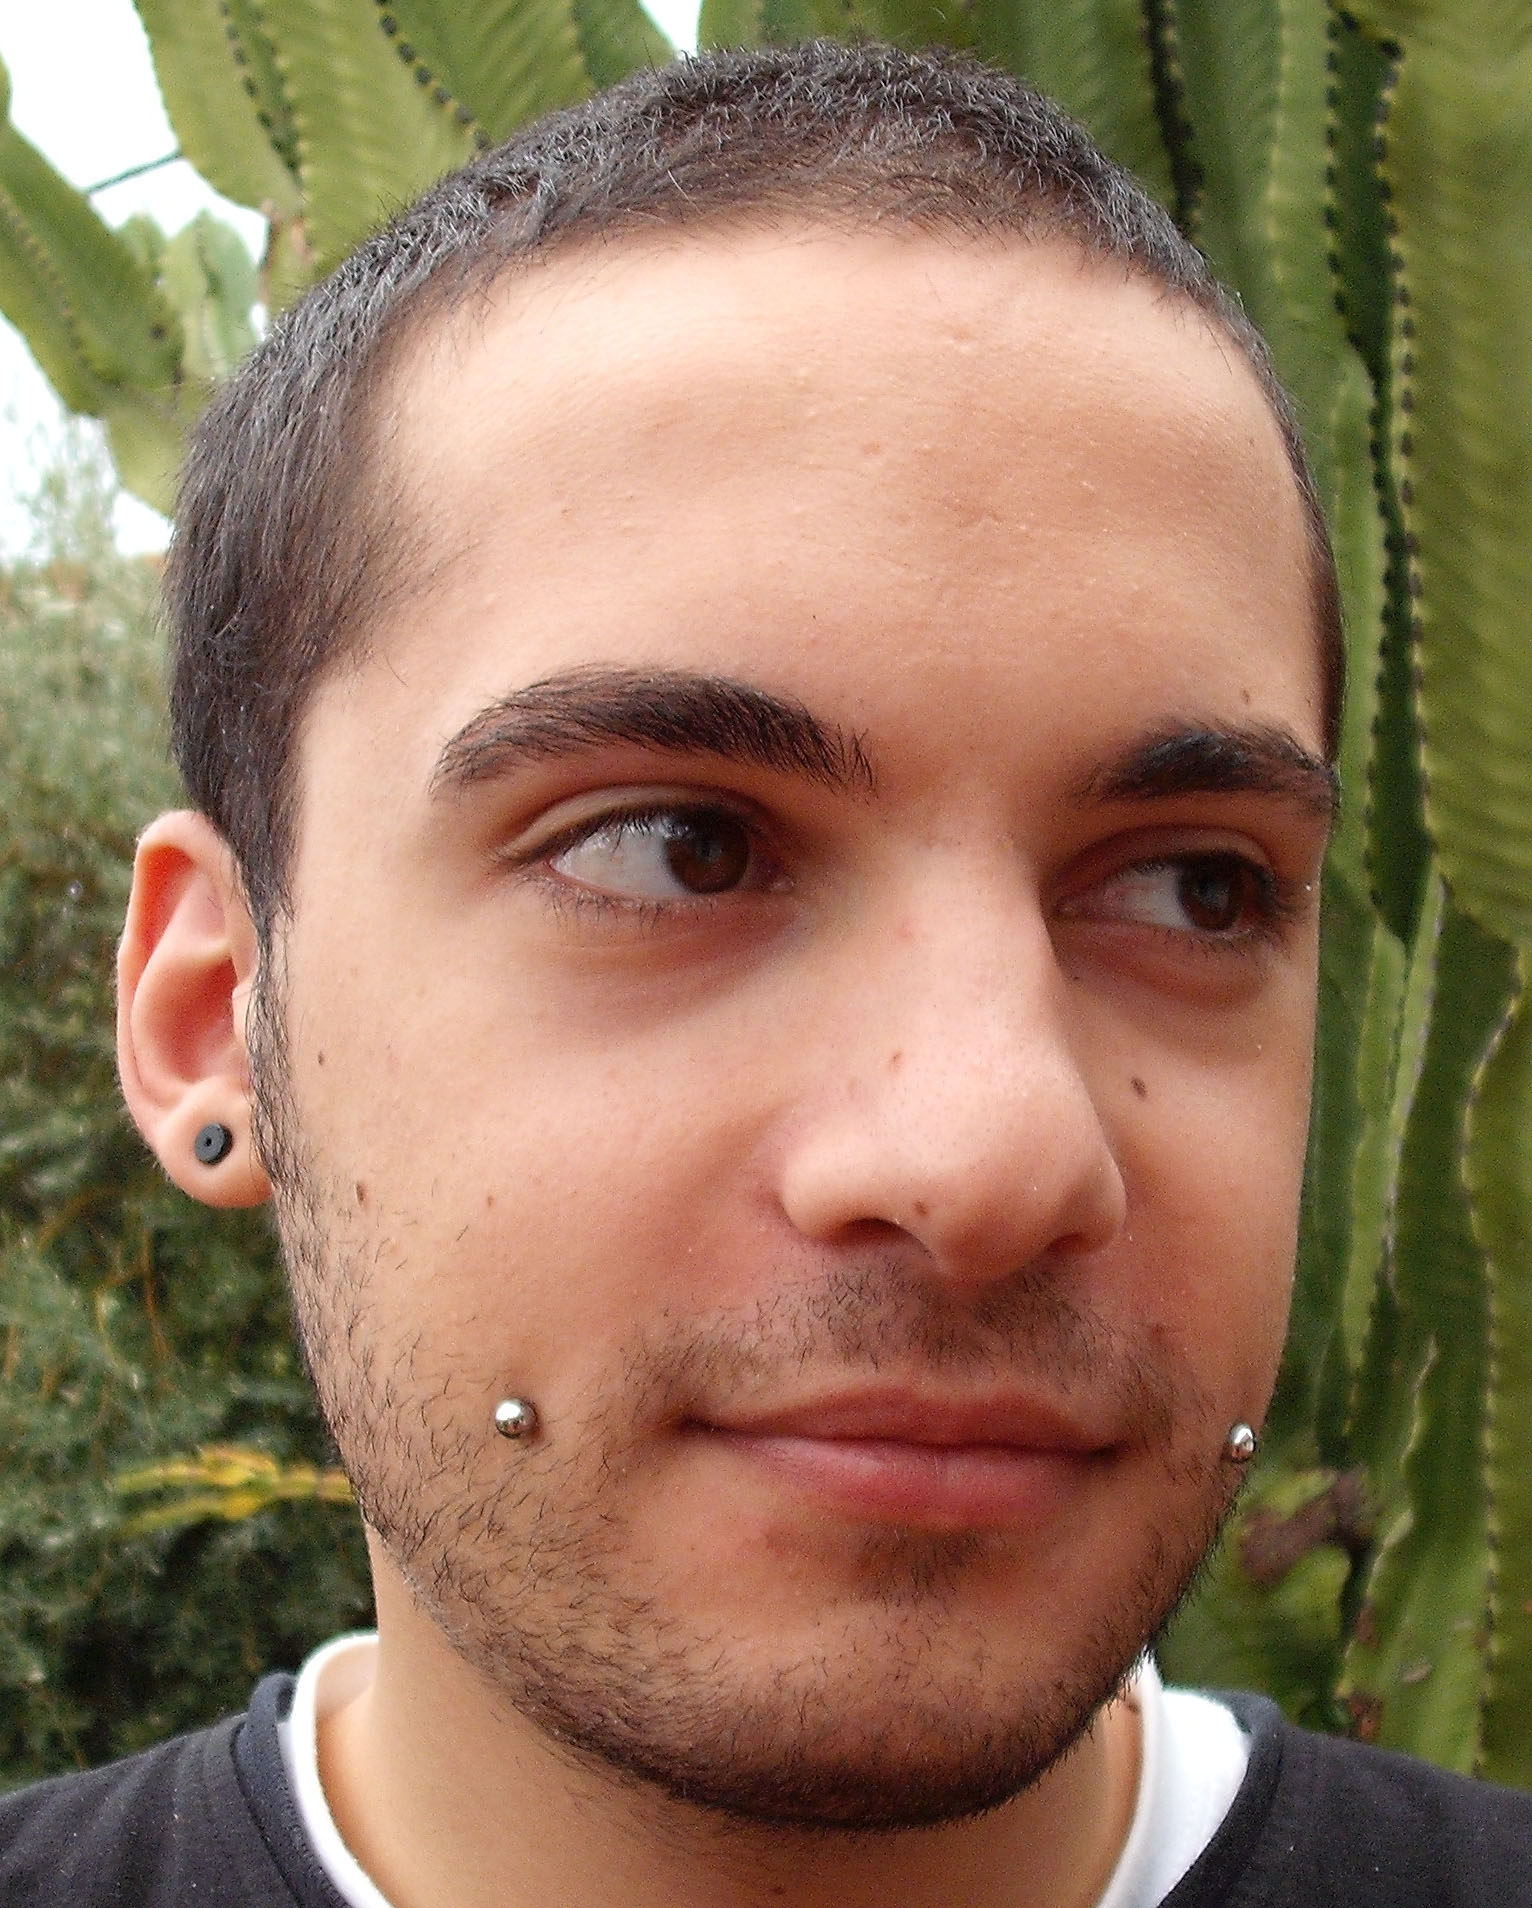 File:Cheek Hear piercing.jpg - Wikimedia Commons